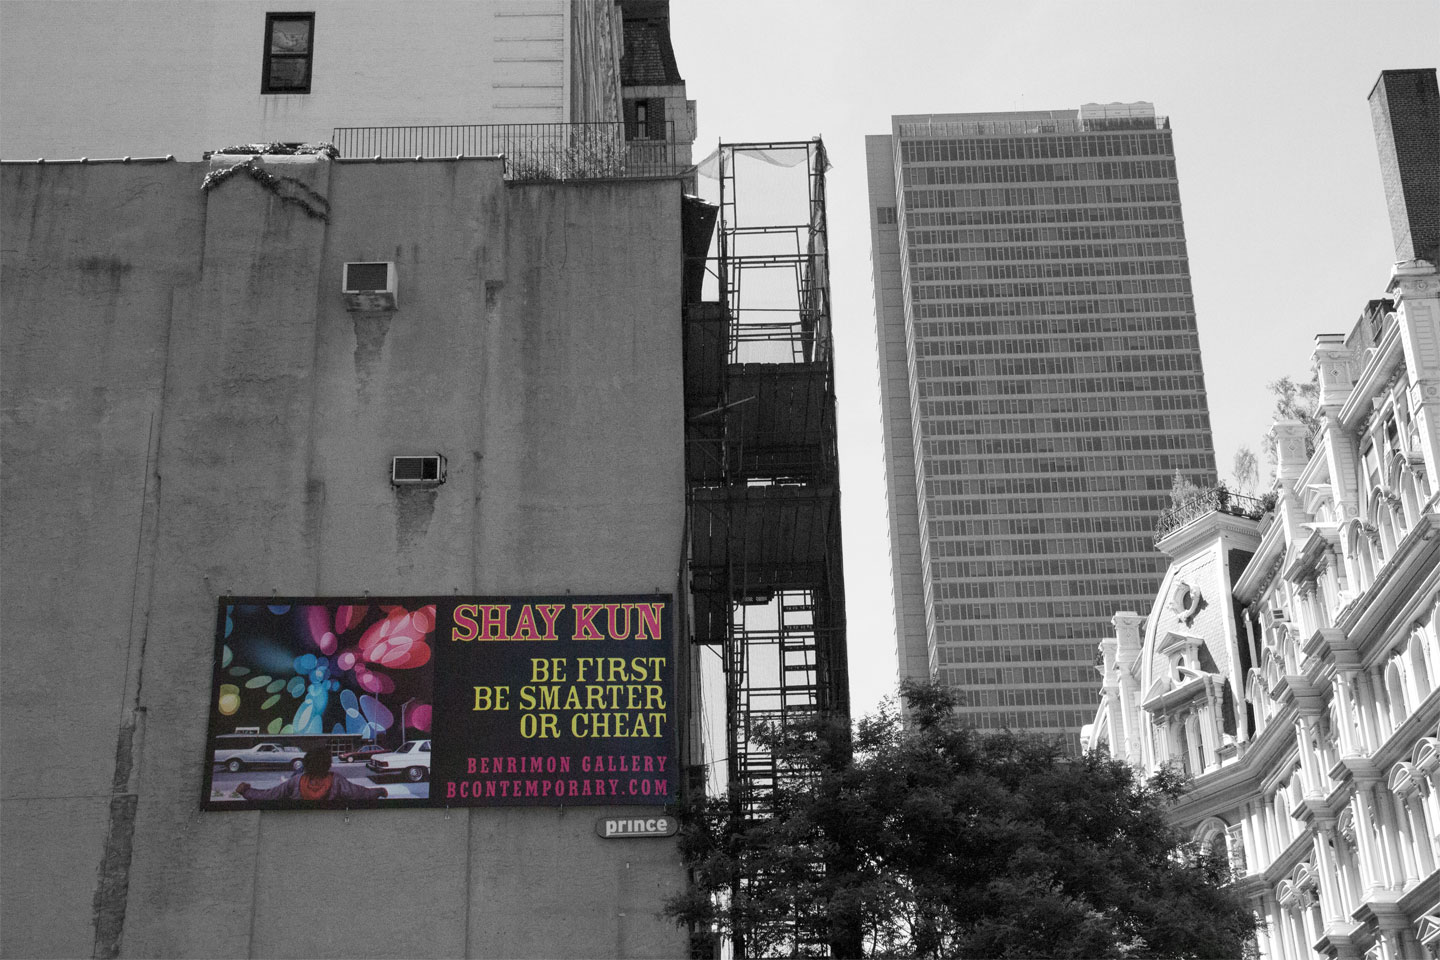 Billboard Advertisement in Manhattan, New York  for a contemporary art gallery.